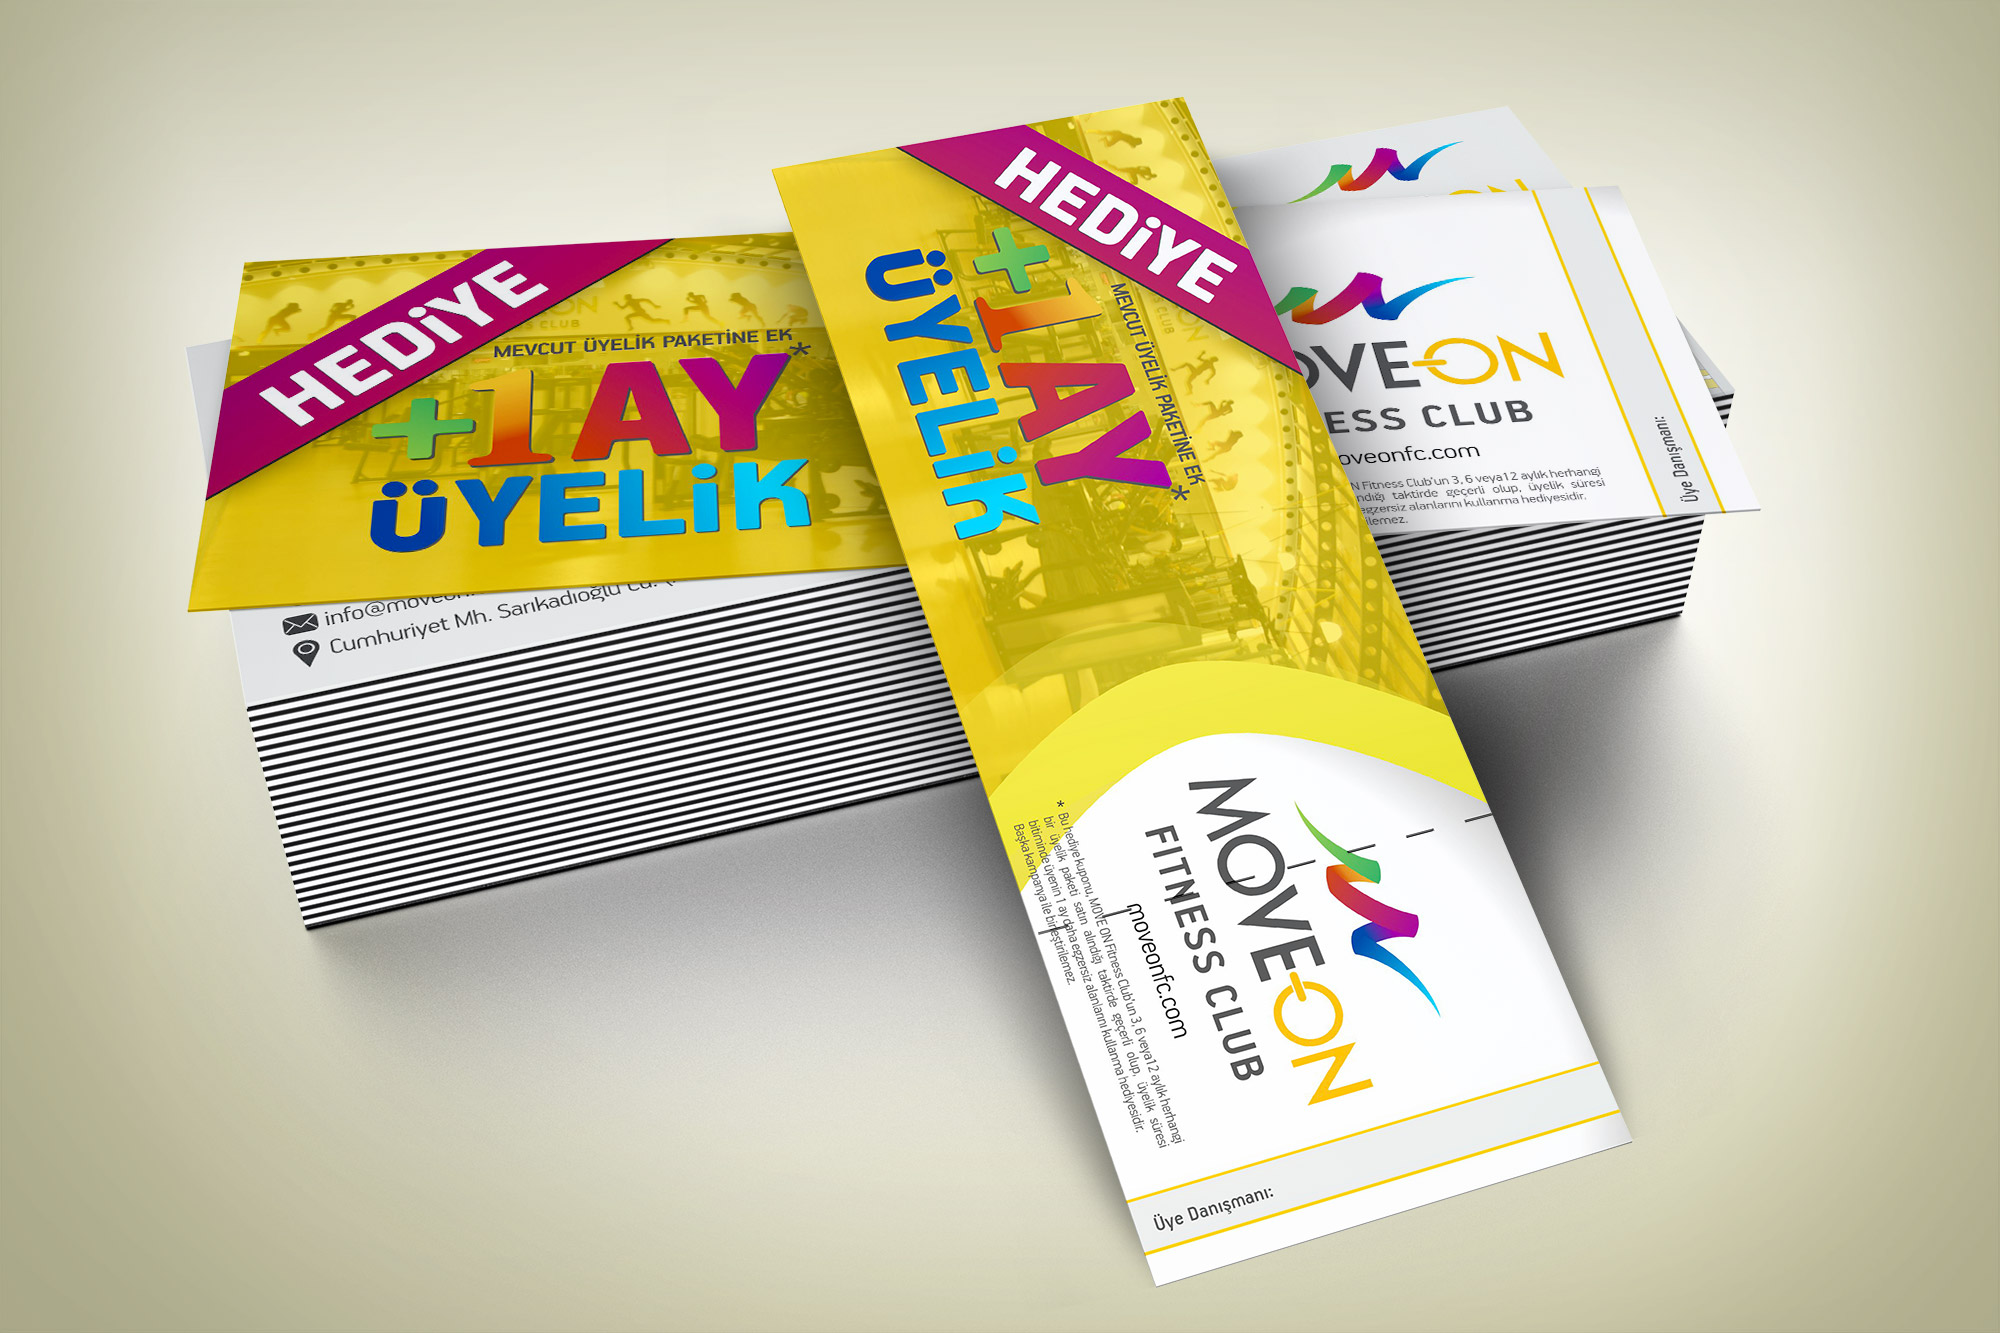 Hediye Kuponu - Move On Fitness Club